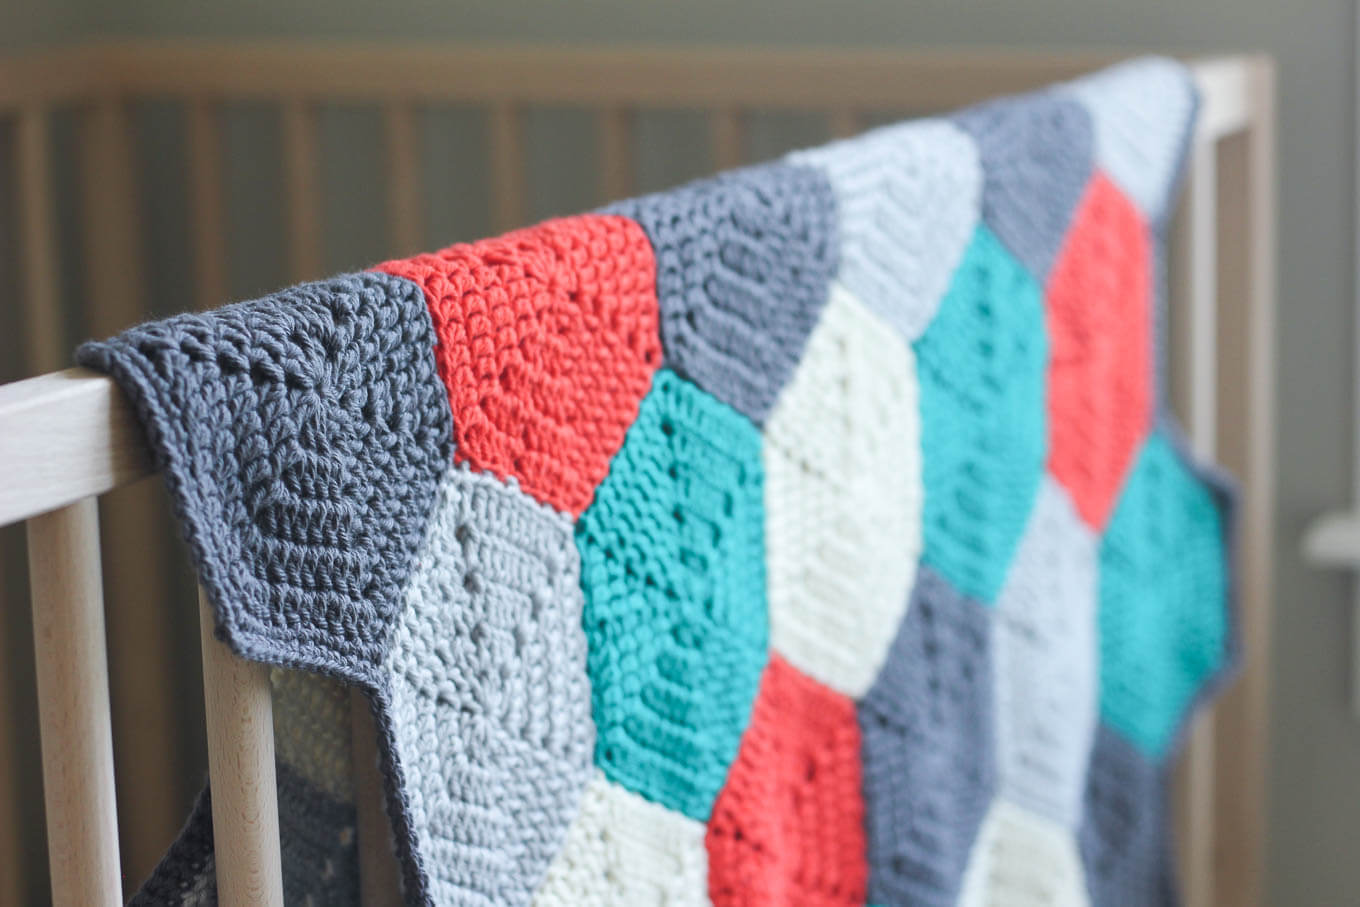 Free crochet baby afghan pattern that looks great in gender-neutral colors, but also works equally well for a boy or a girl. Click for the free pattern and photo tutorial. | MakeAndDoCrew.com